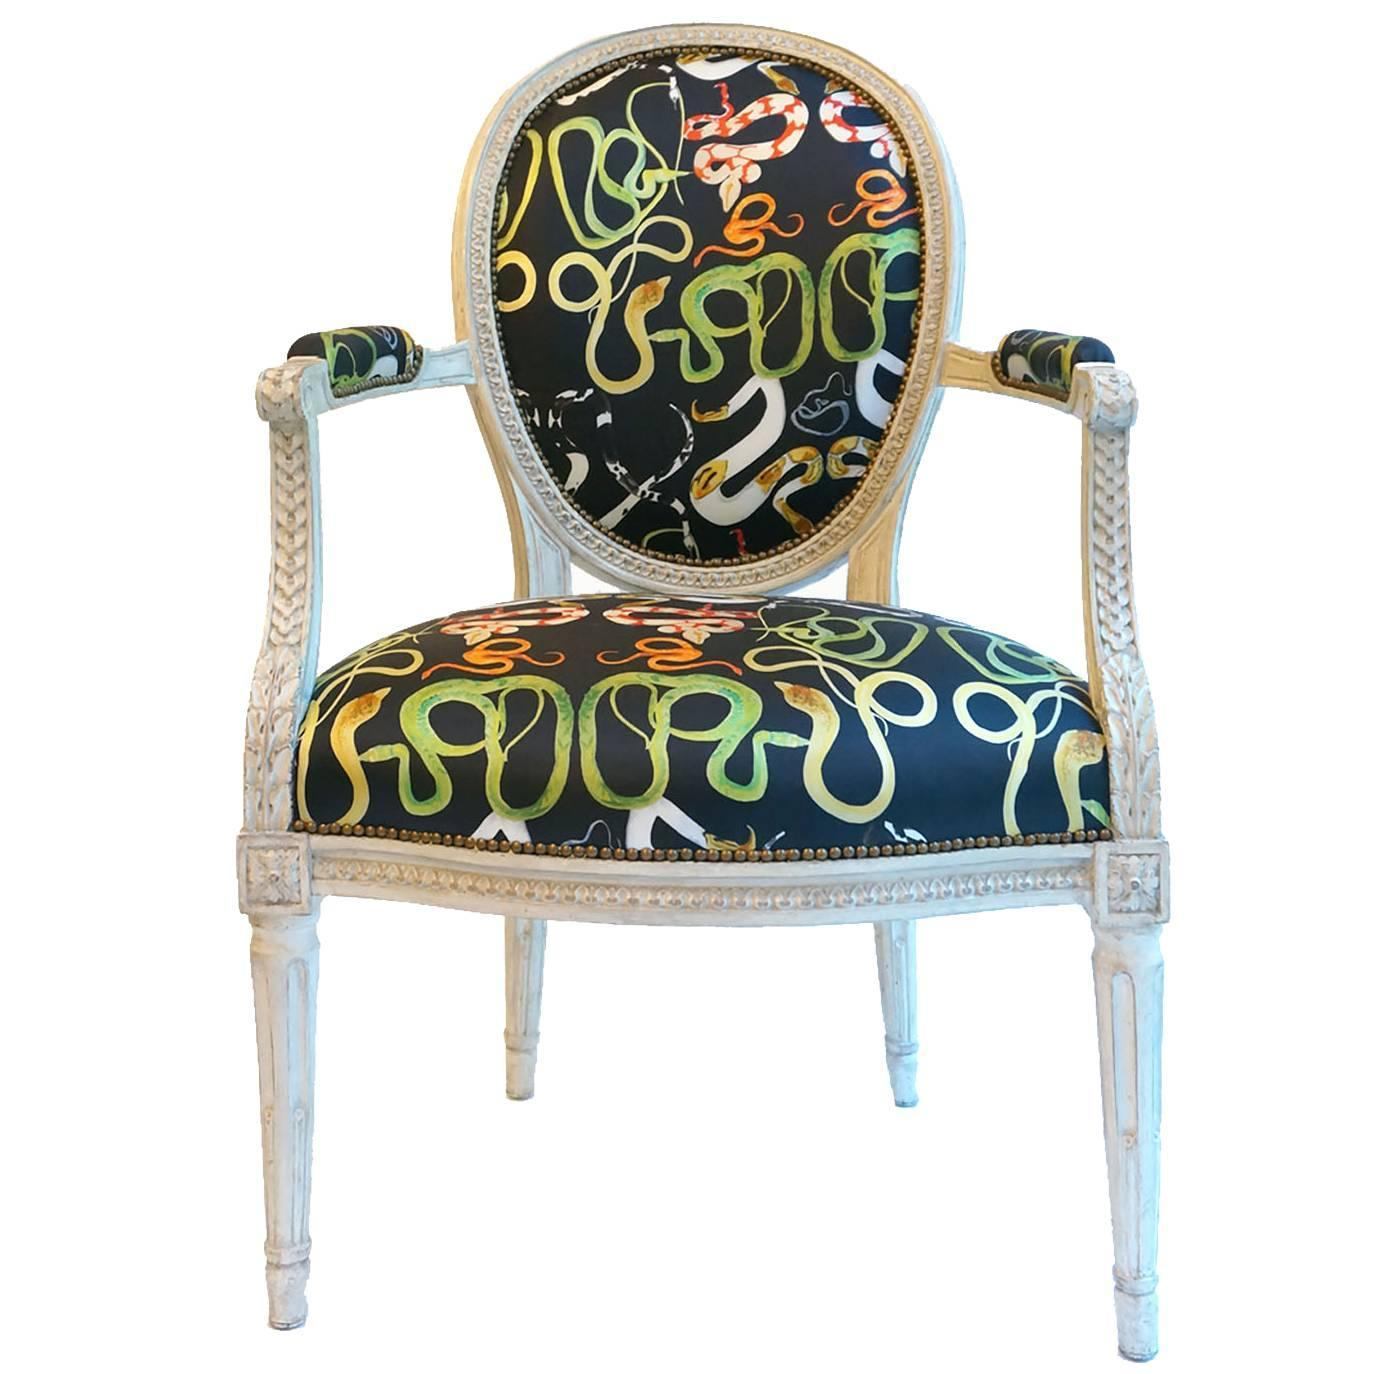 Balloon Chair For Sale French Balloon Back Chair X Voutsa Snakes On Black For